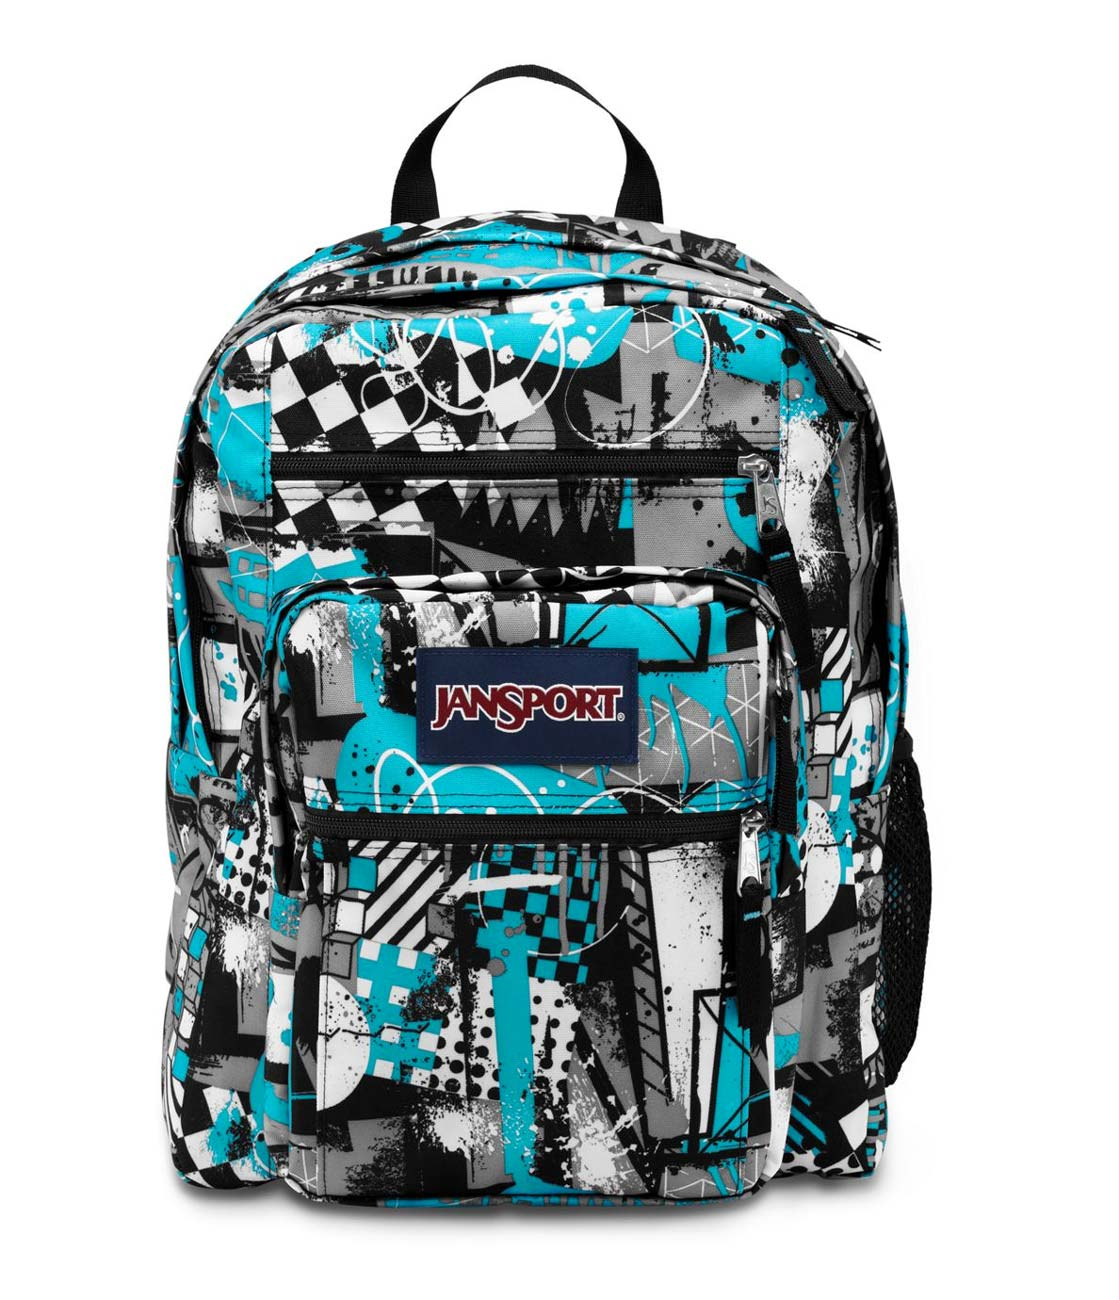 Jansport Backpacks For Teenage Girls dklDXtpY